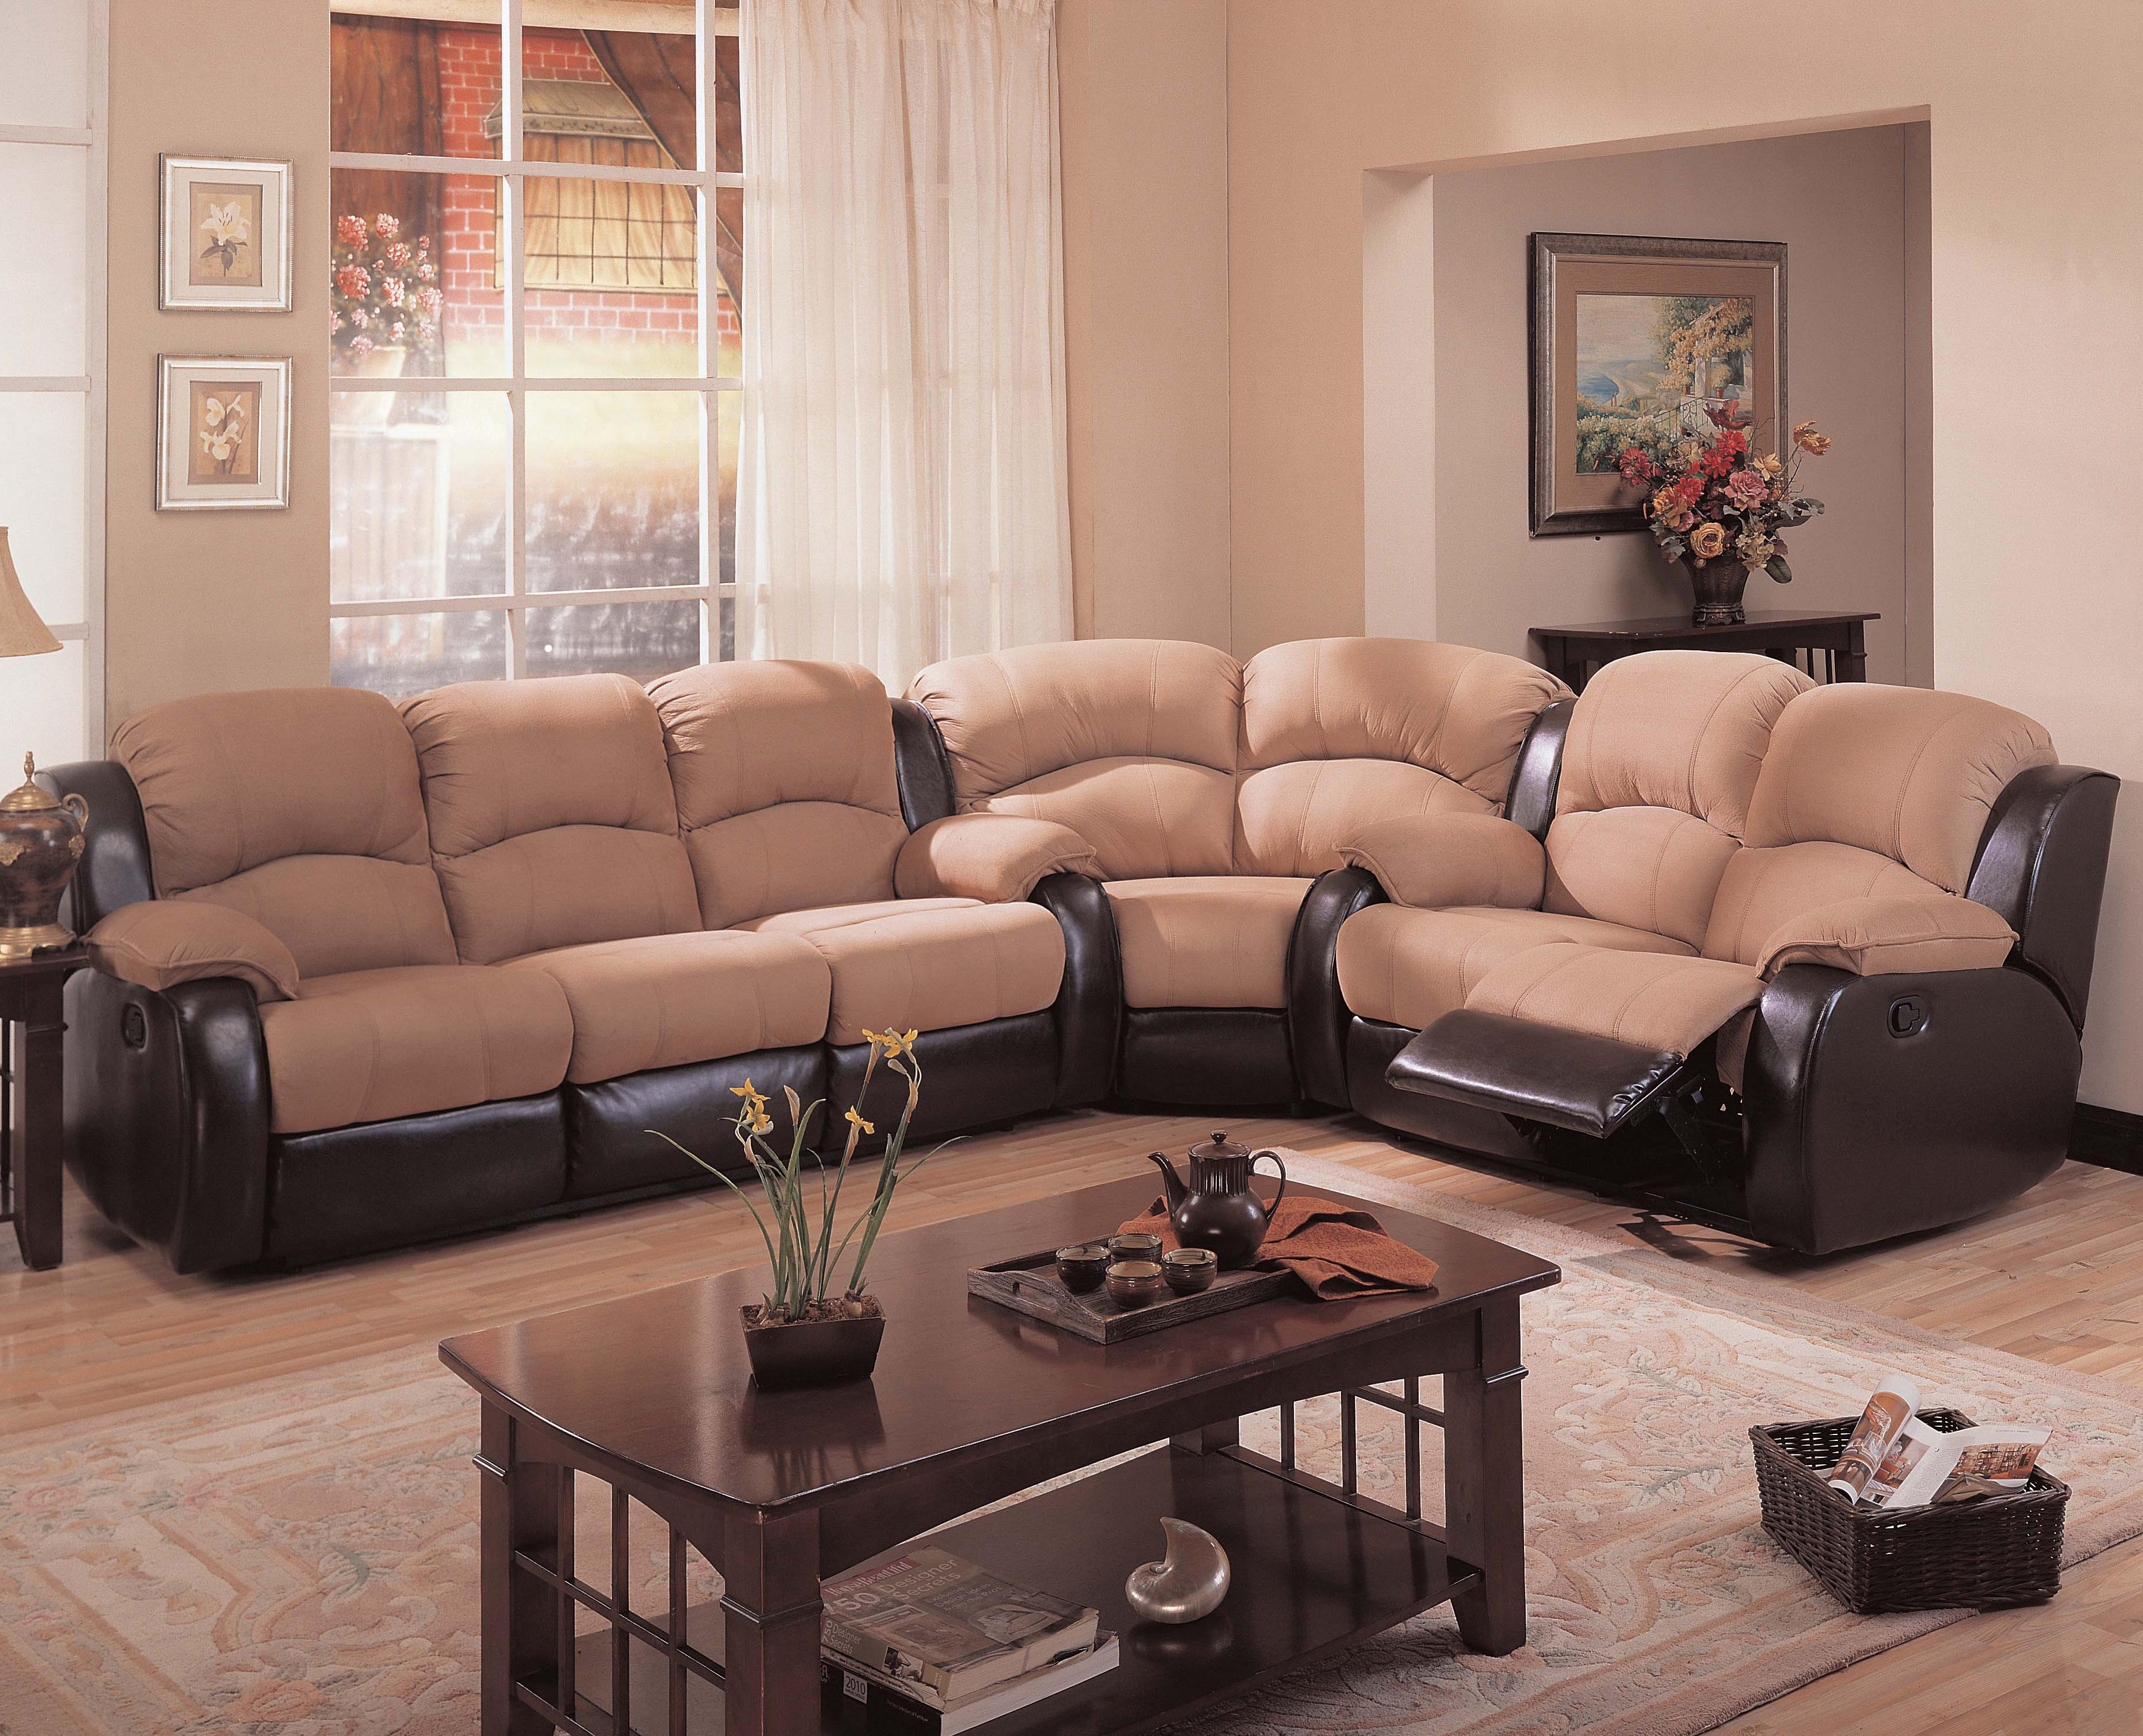 microfiber sectional couch with recliner ... living room furniture reclining sofa leather recliner sectional corner PMDIDYU